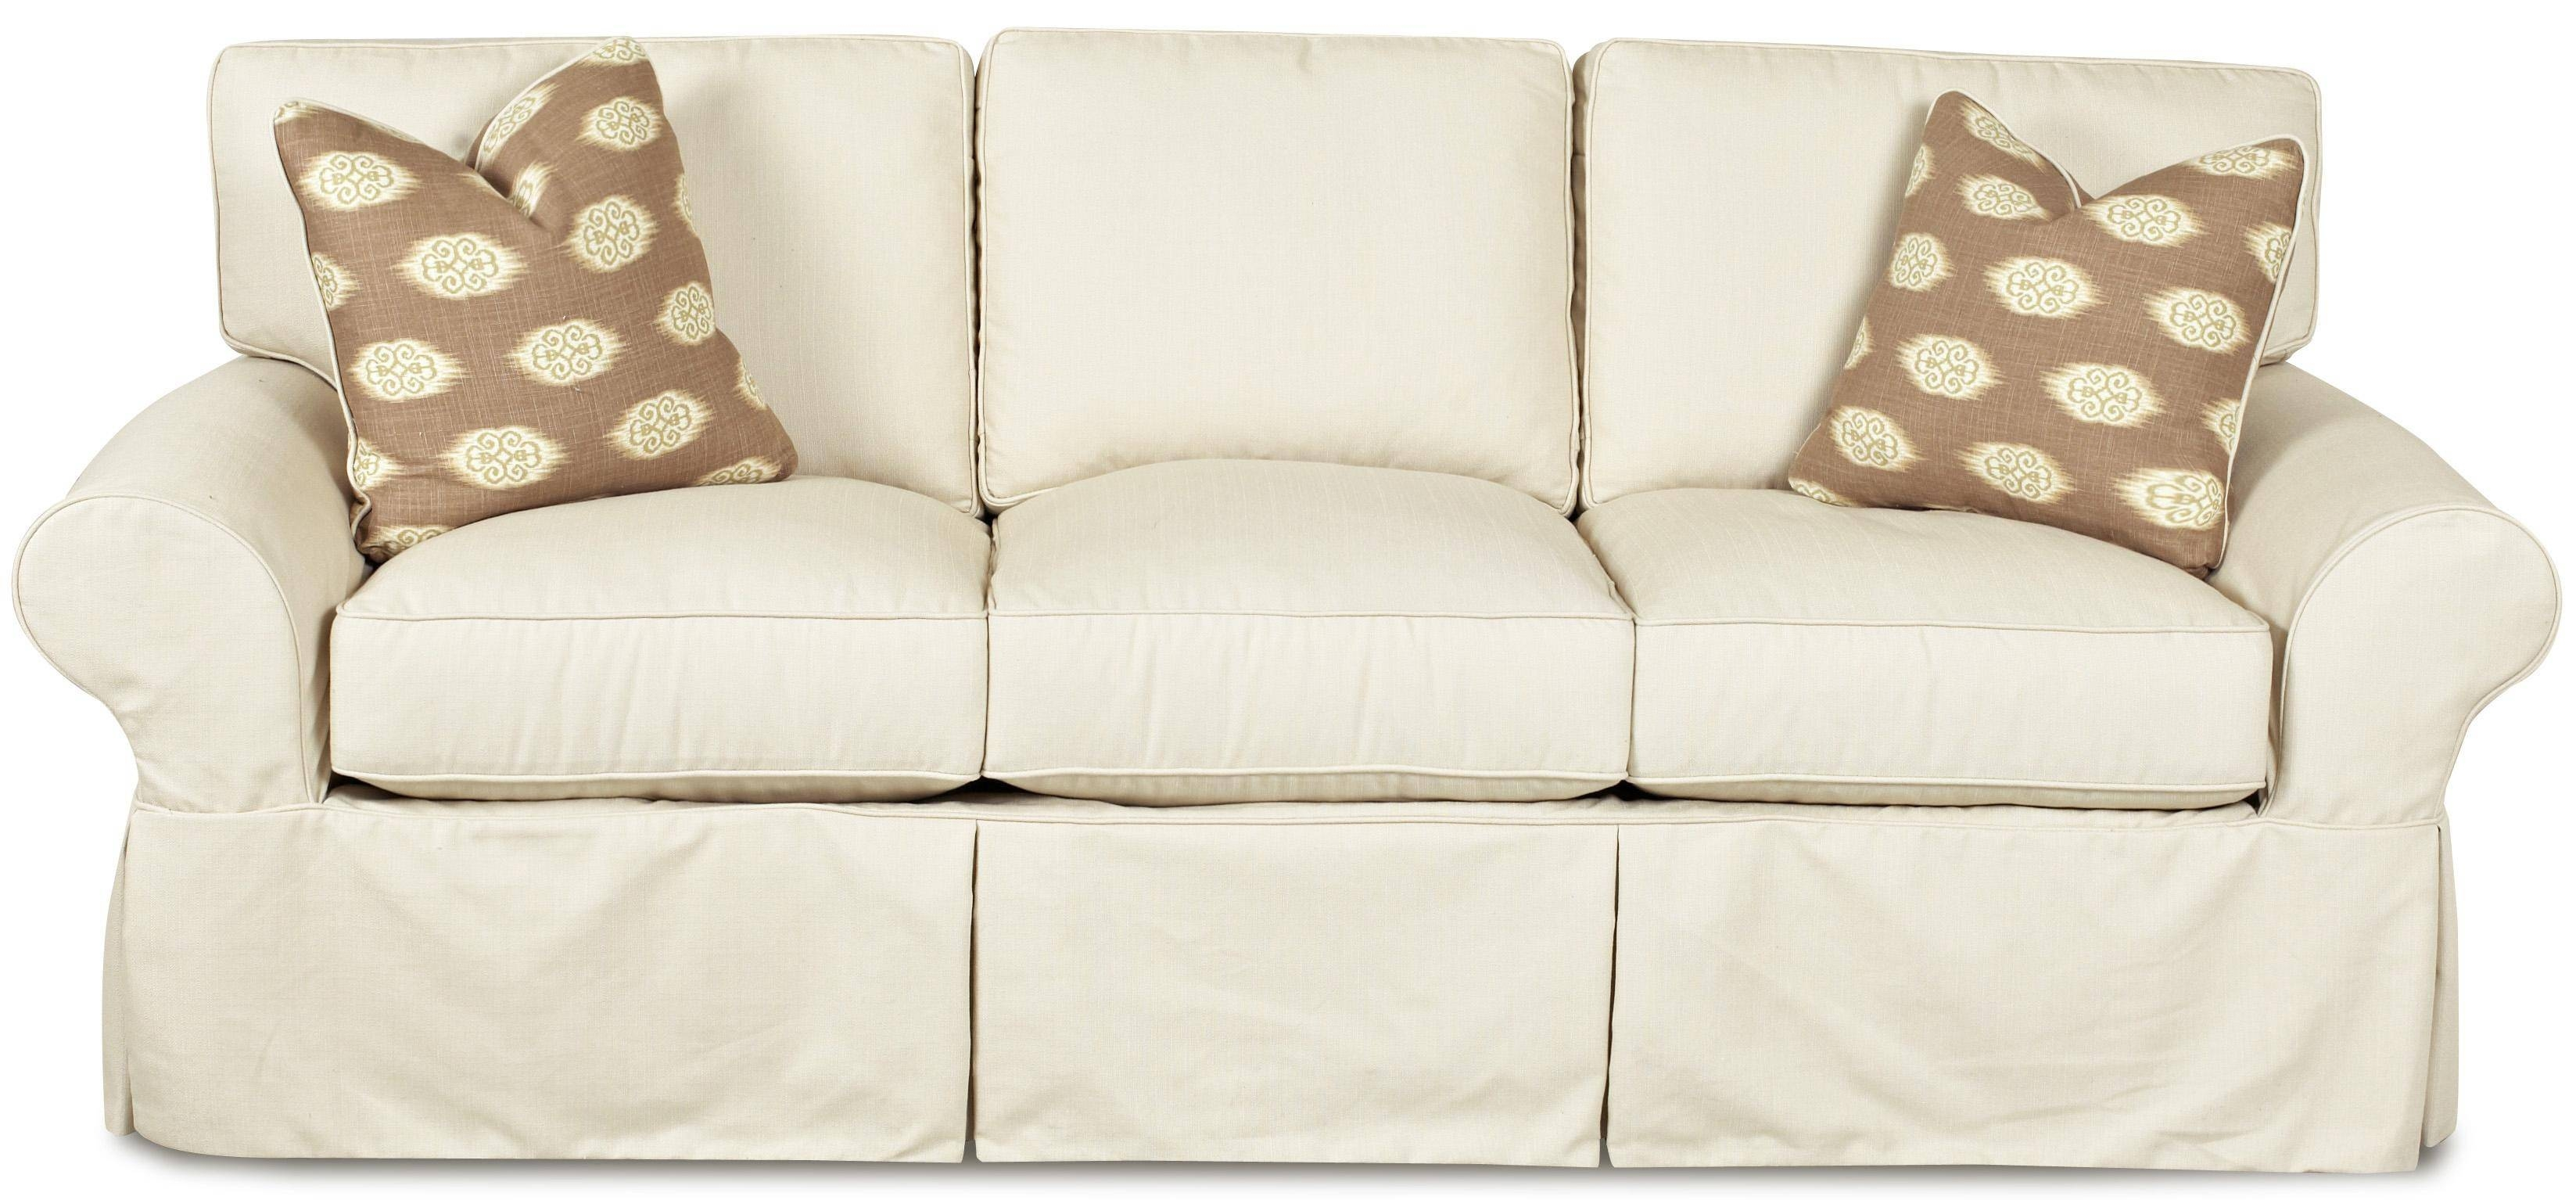 Klaussner Patterns Slipcovered Sofa With Rolled Arms And Tailored with regard to Slipcovers Sofas (Image 17 of 30)